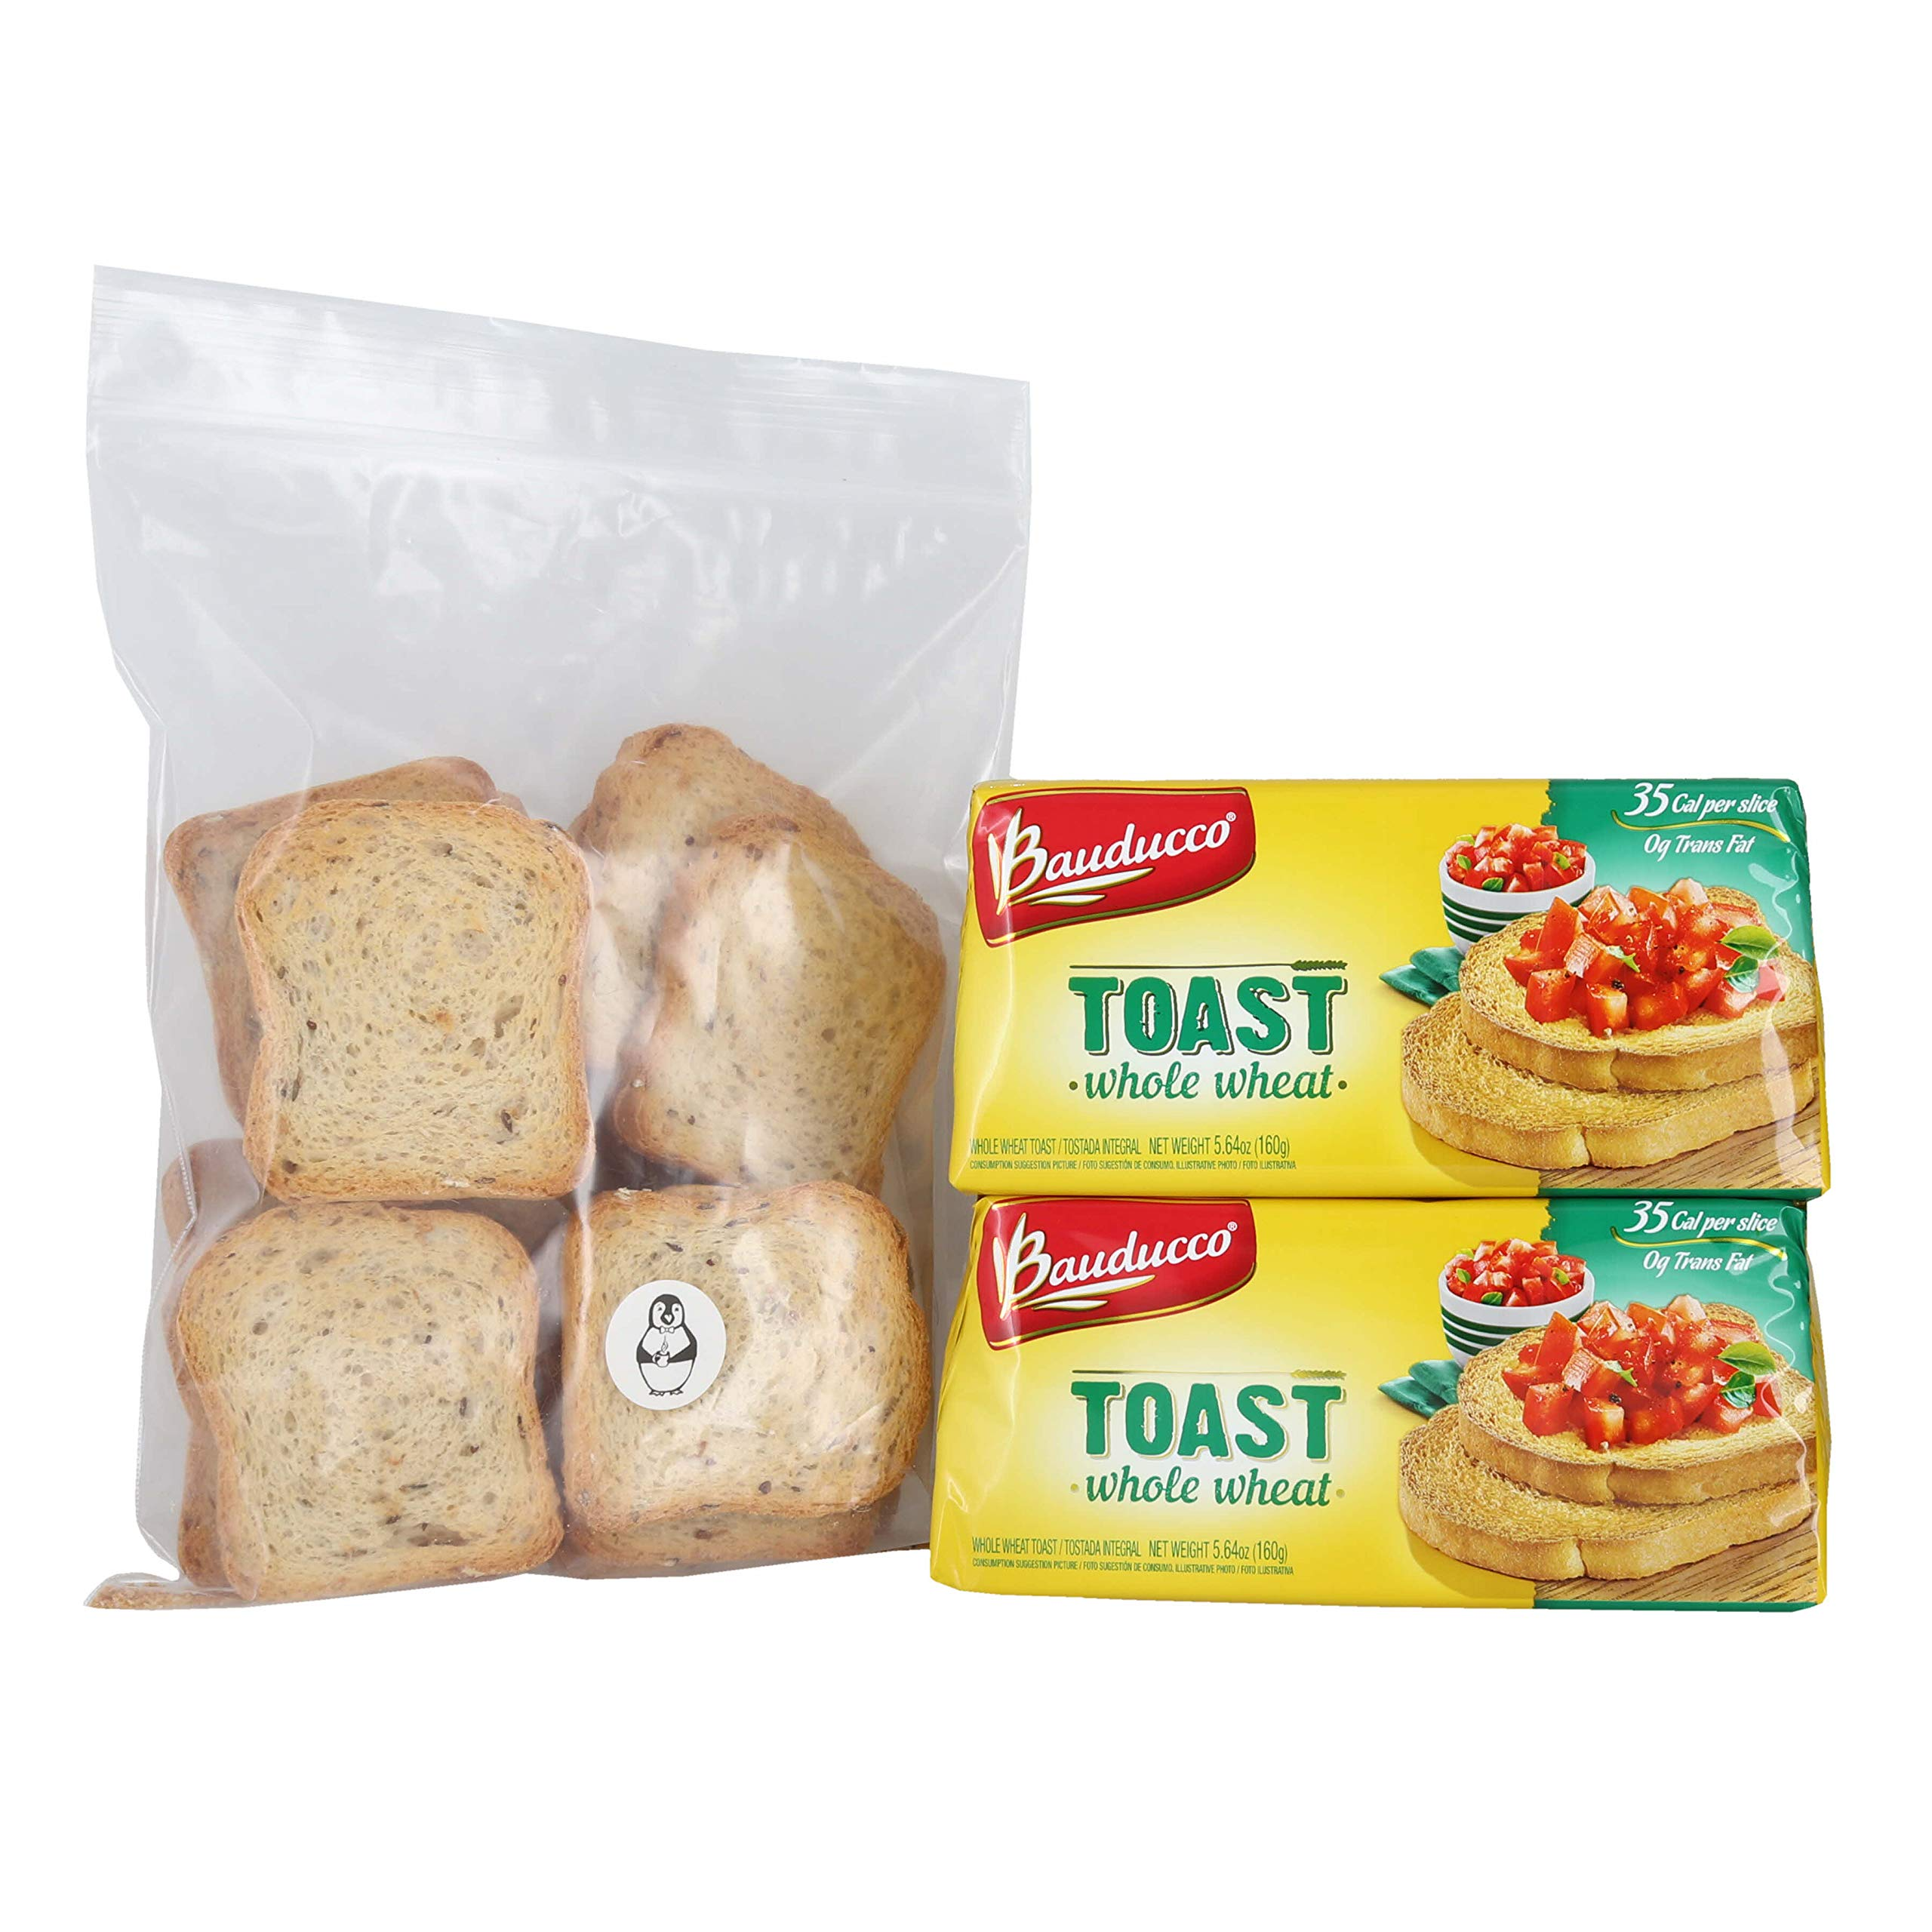 Bauducco Whole Wheat Toast - (2 Pack) W/ Premium Penguin Quick Storage Pouch by Bauducco